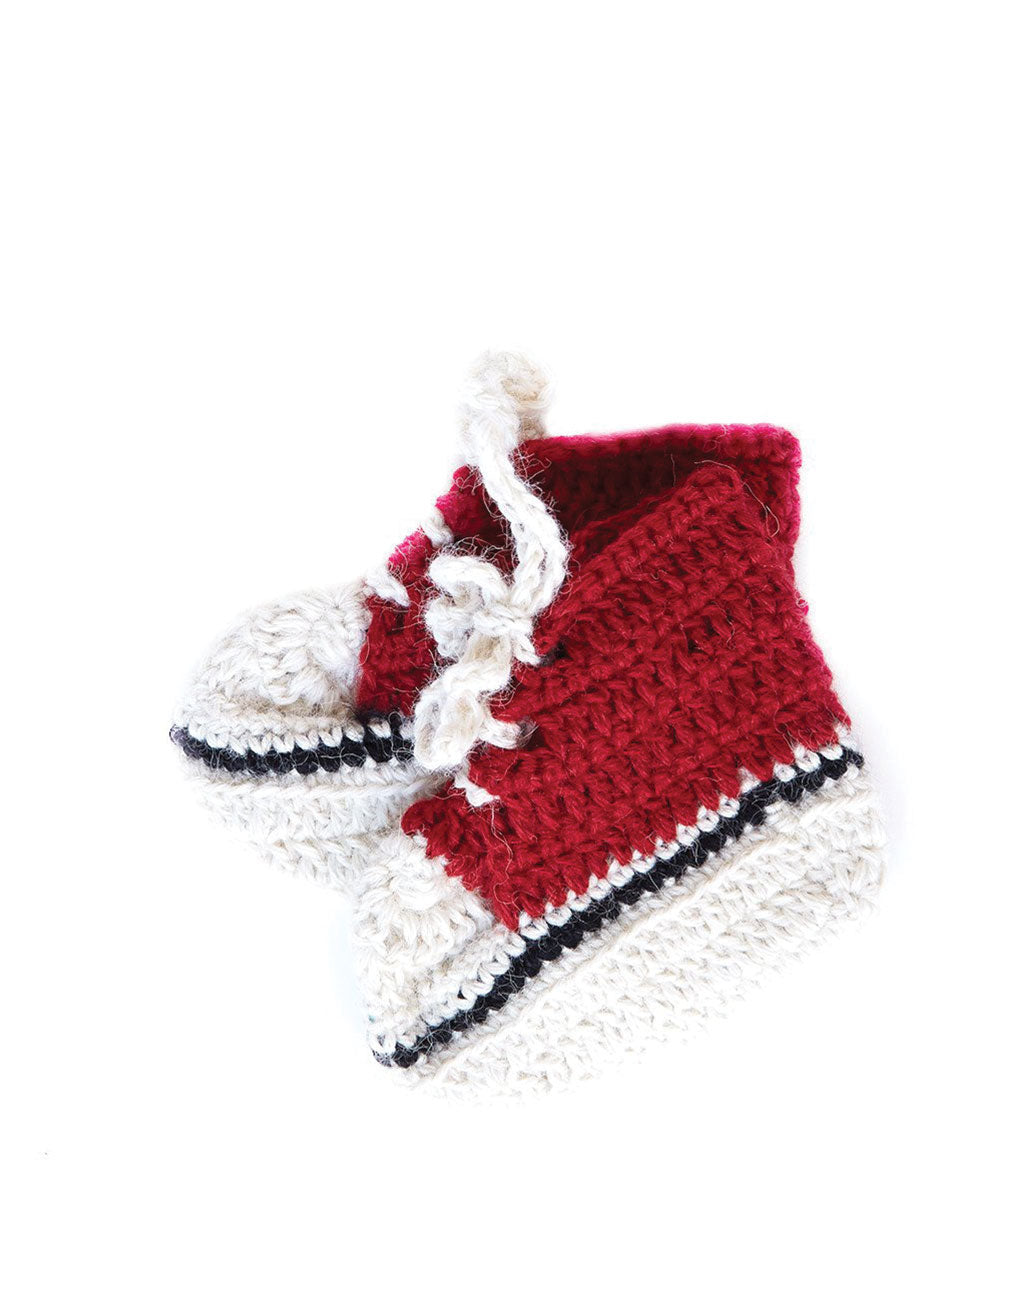 Red Alpaca Knit Baby Sneakers | The Little Market